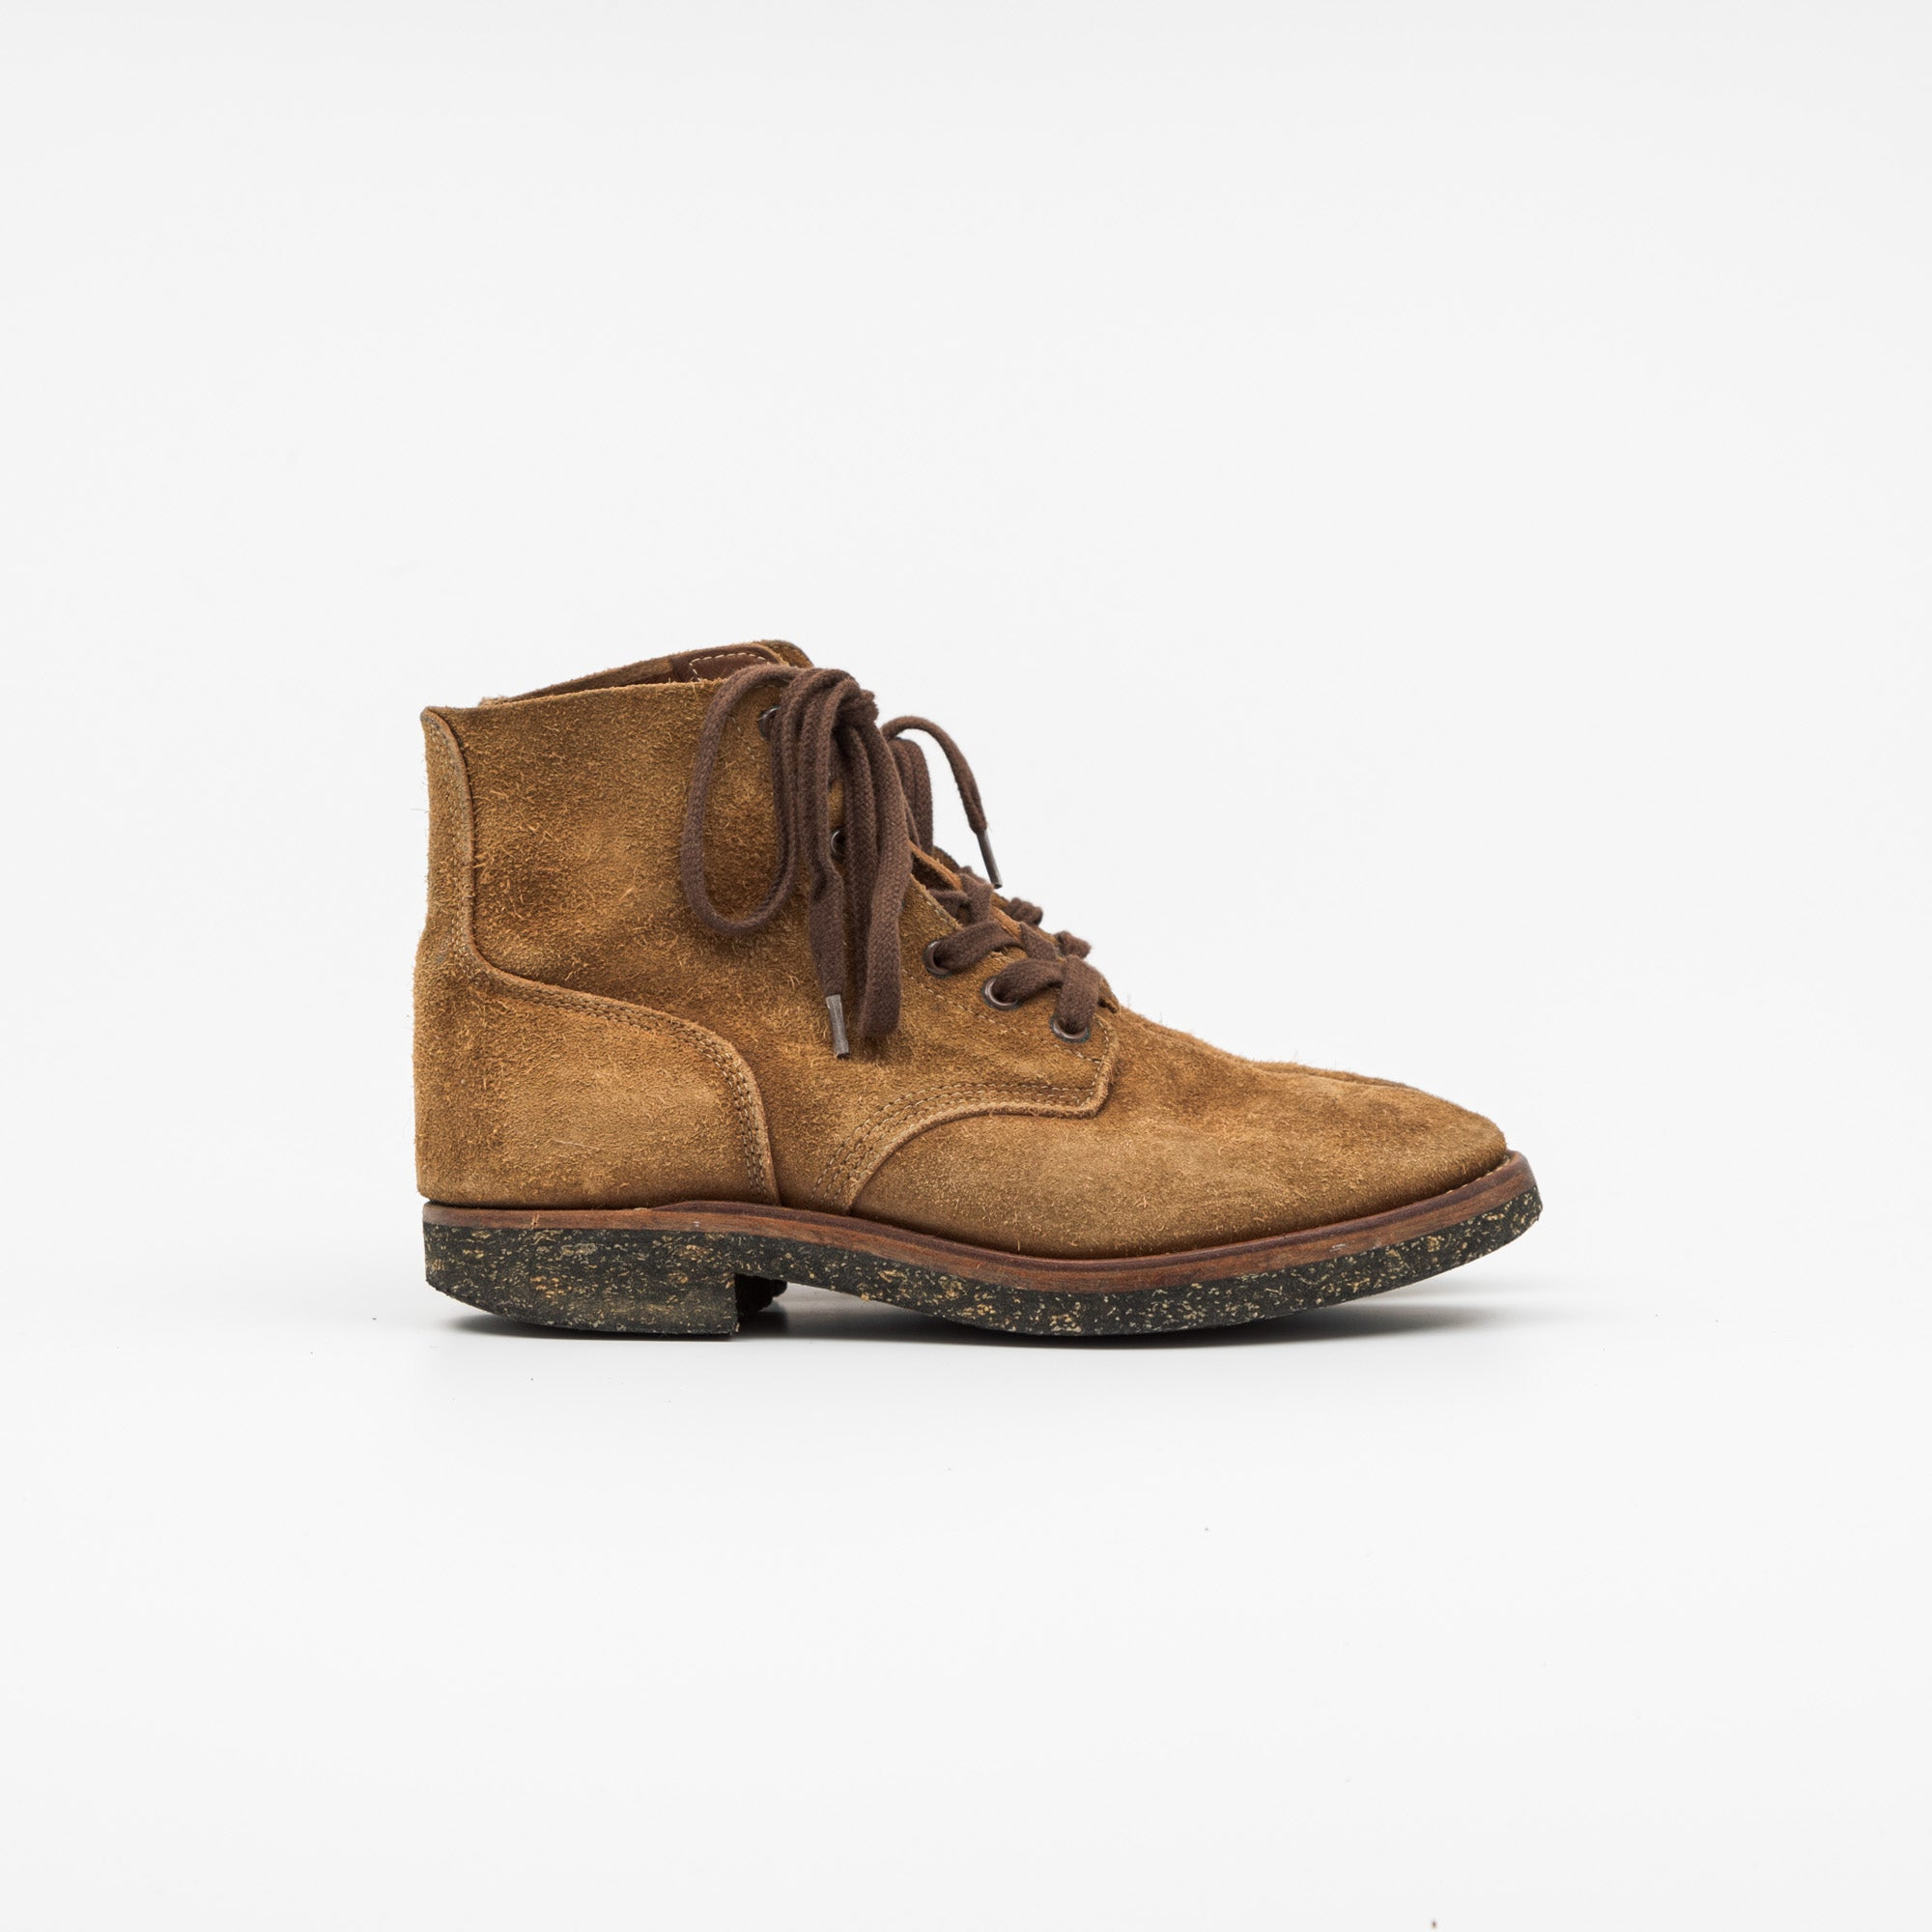 The Real McCoy's N-1 Field Boots